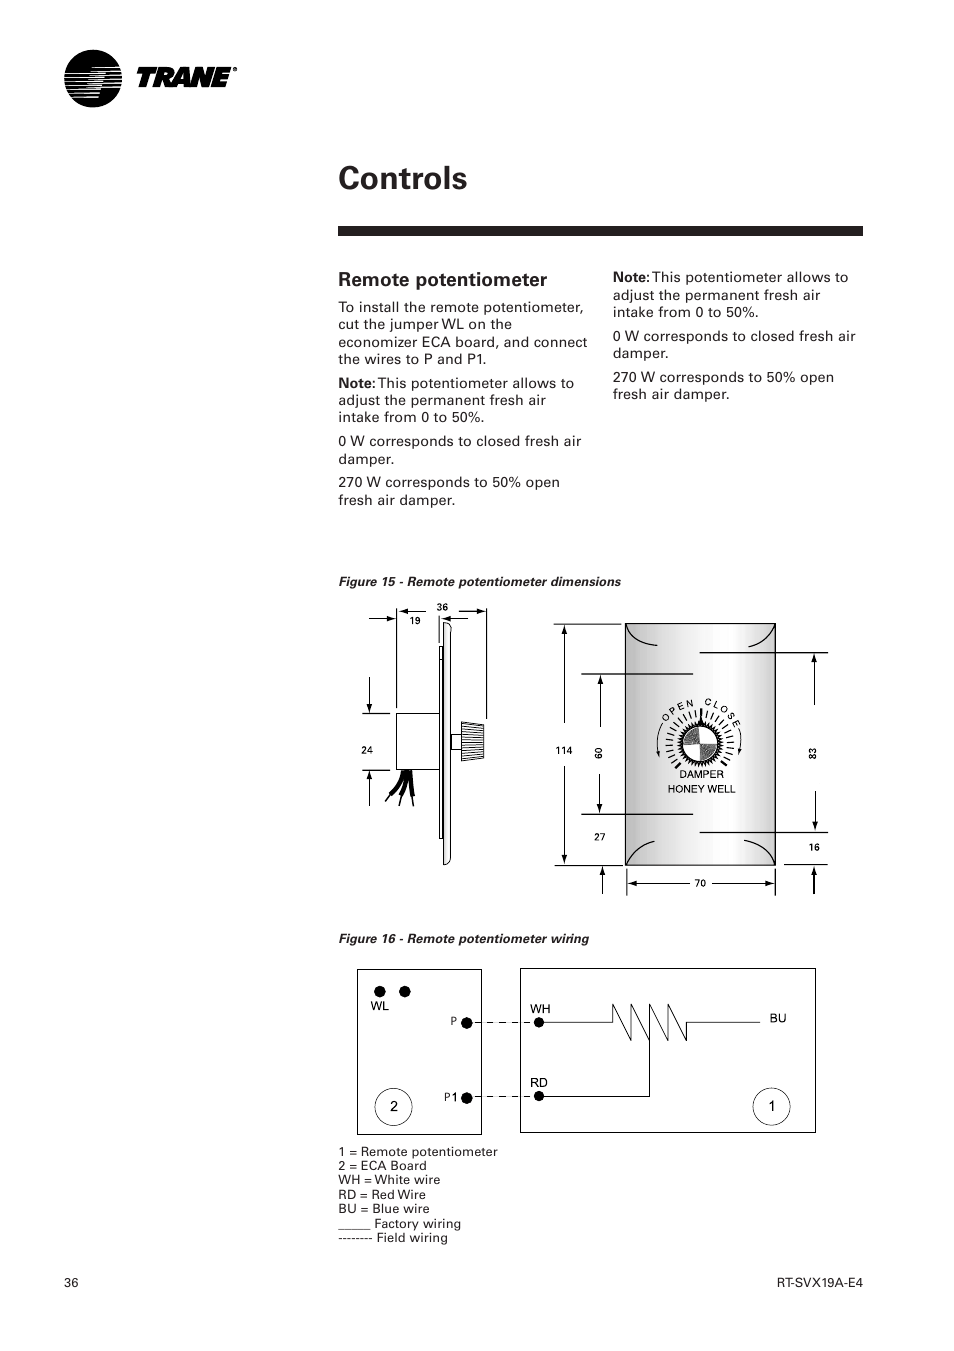 hight resolution of remote potentiometer controls trane rt svx19a e4 user manual page 36 64